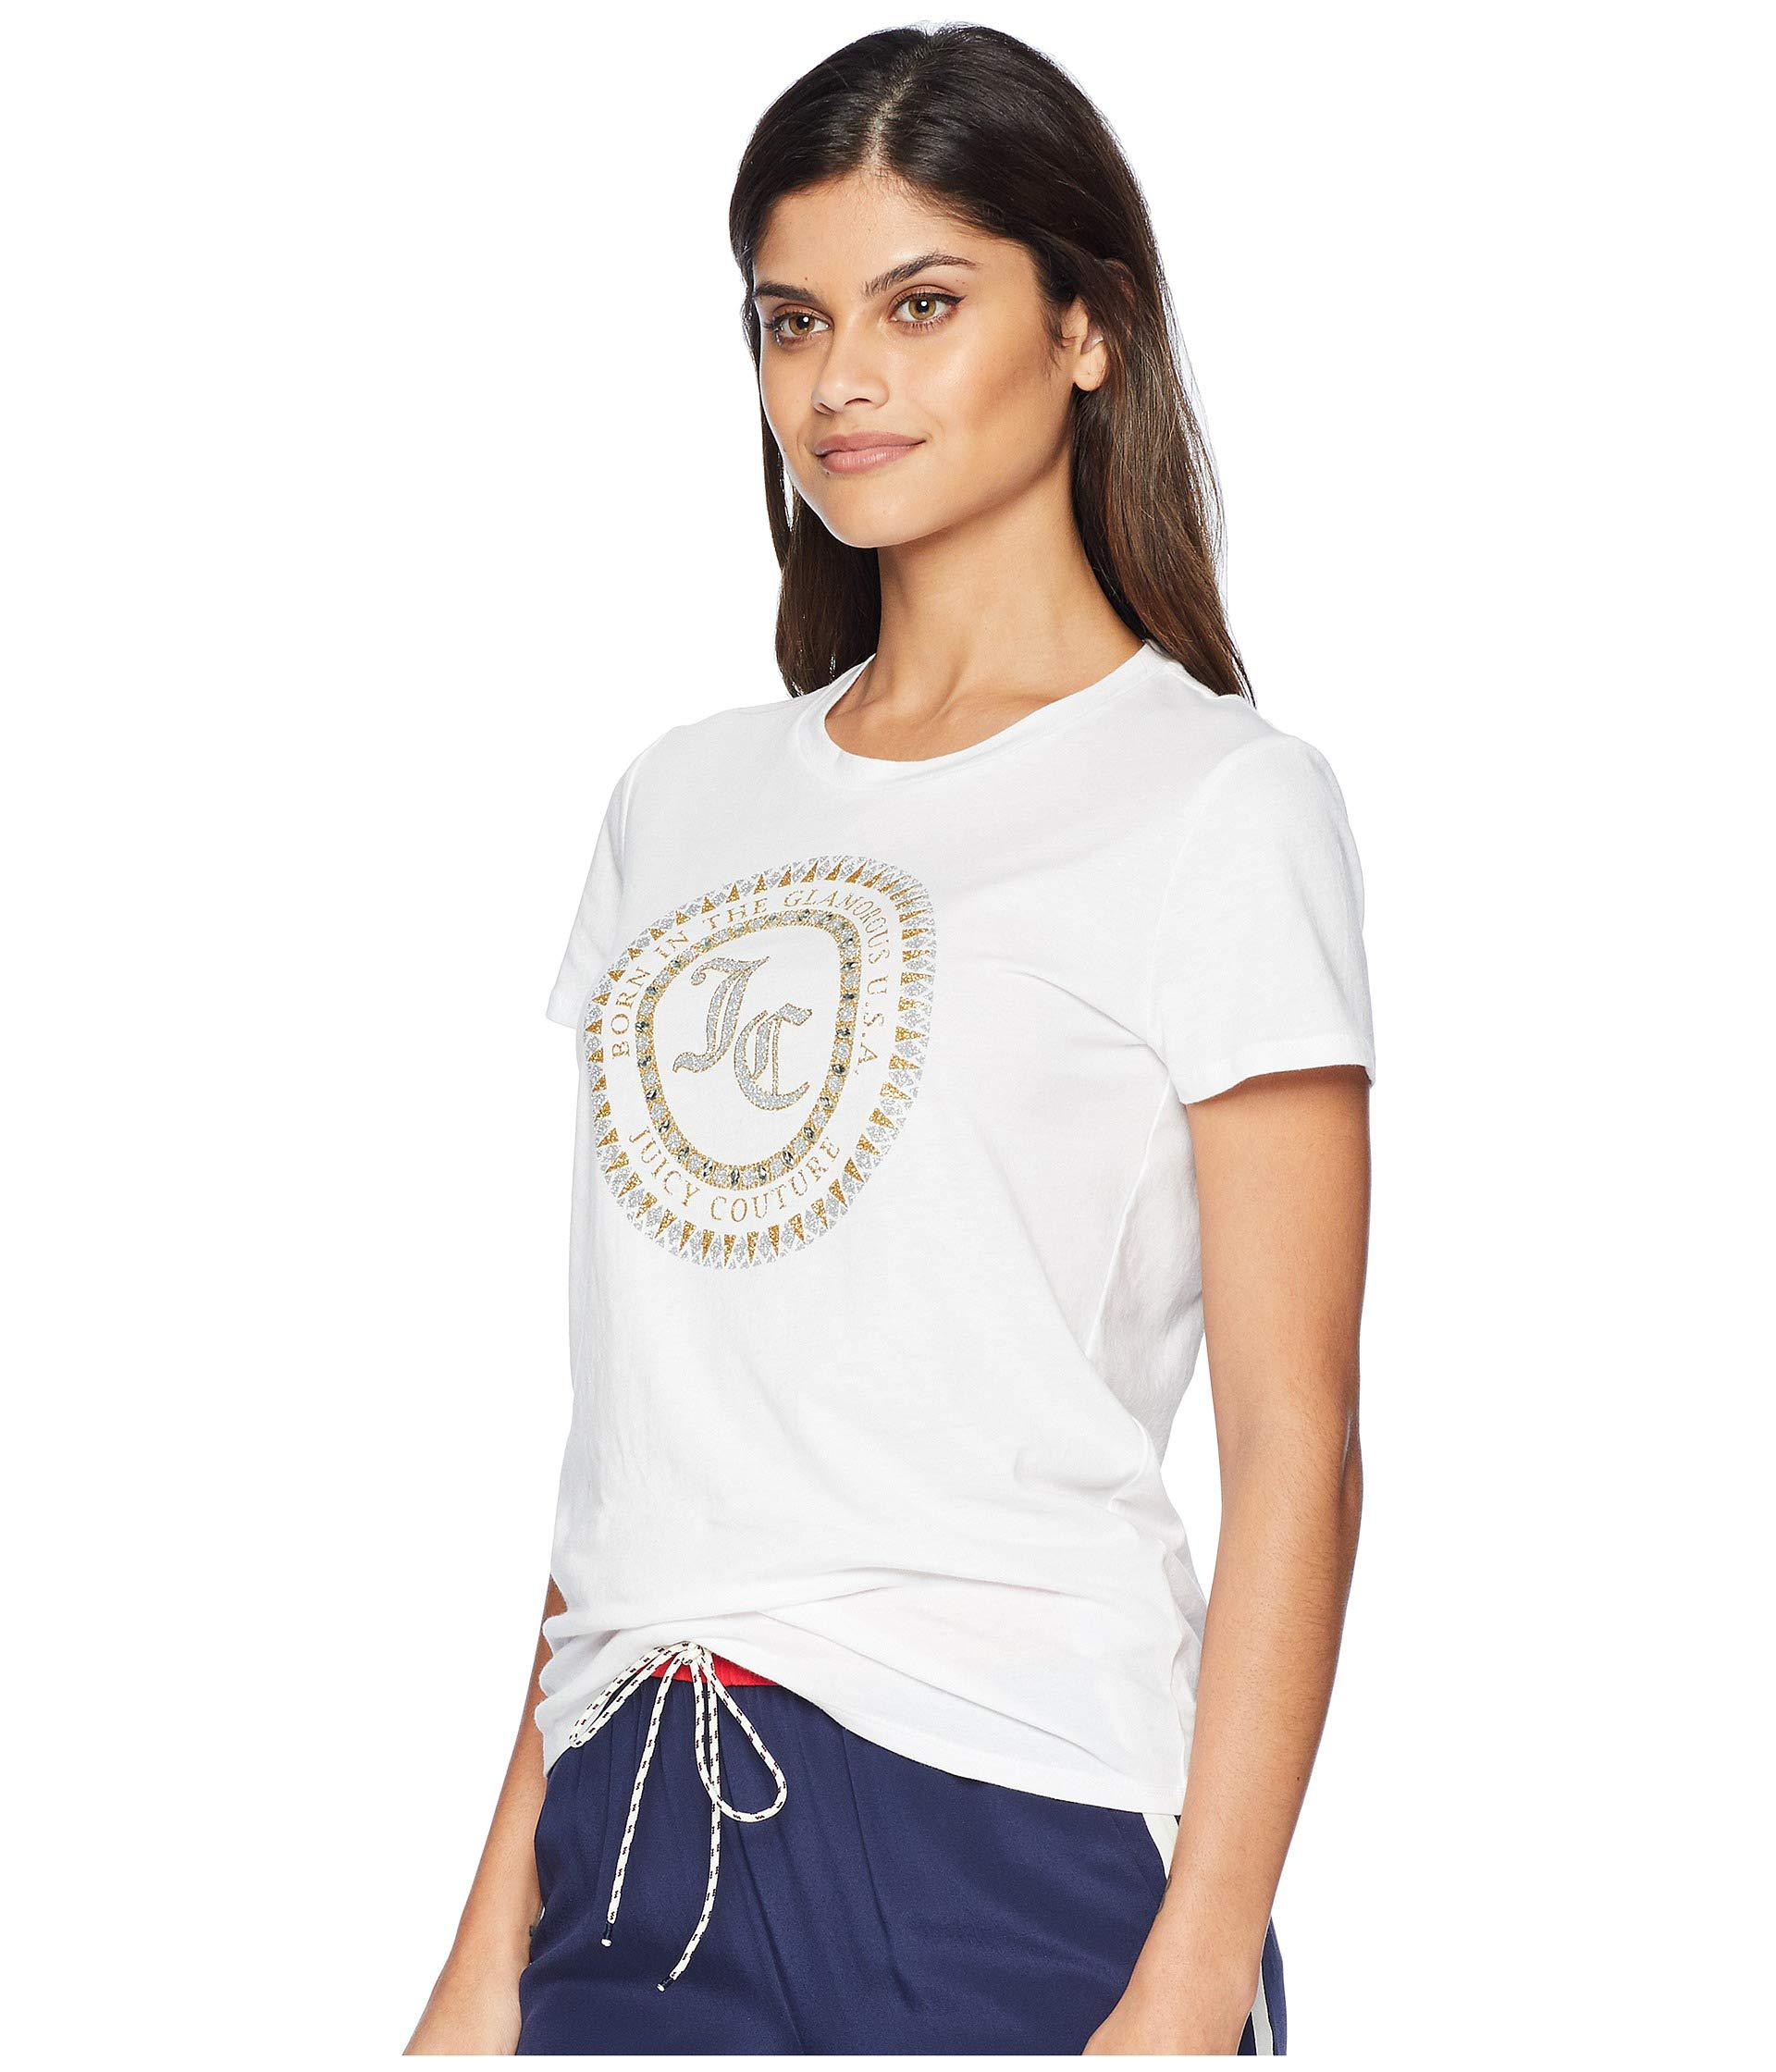 ed015c2afc Lyst - Juicy Couture Track Seal Of Couture Class Short Sleeve Tee in White